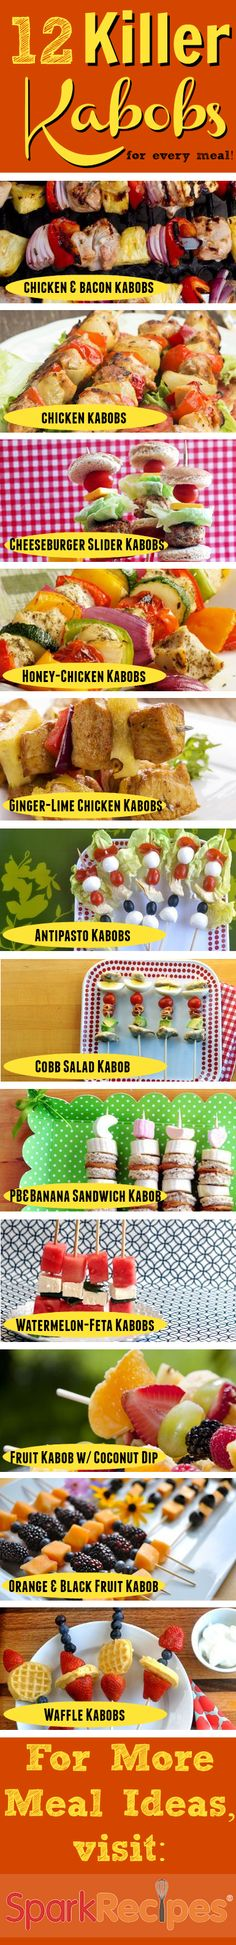 12 Healthy Dishes Served on a Stick. Wonderful recipes! | via @SparkPeople #LaborDay #healthy